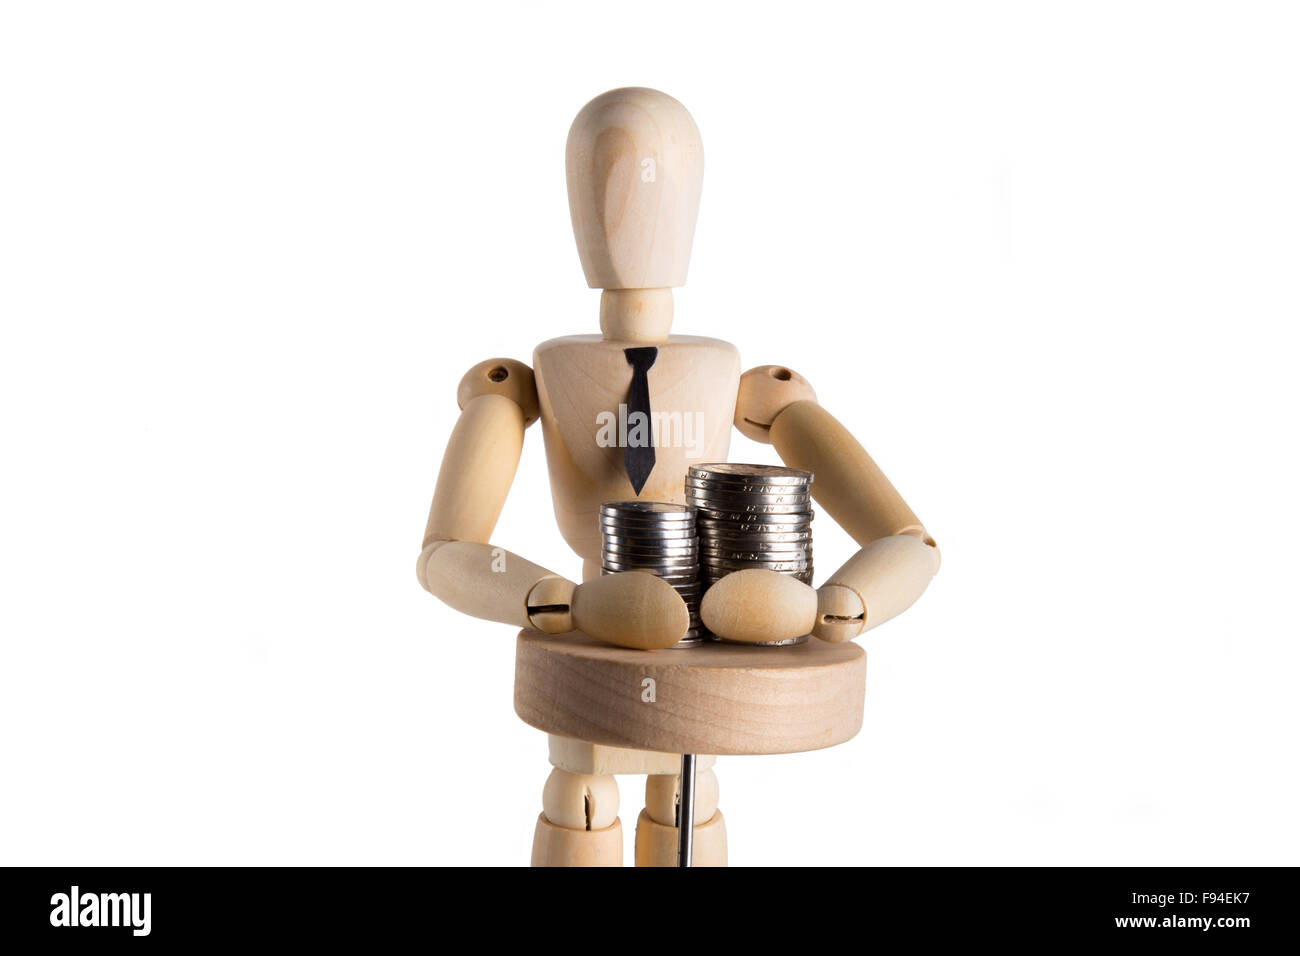 Businessman puppet grabbing money in front of white background - Stock Image